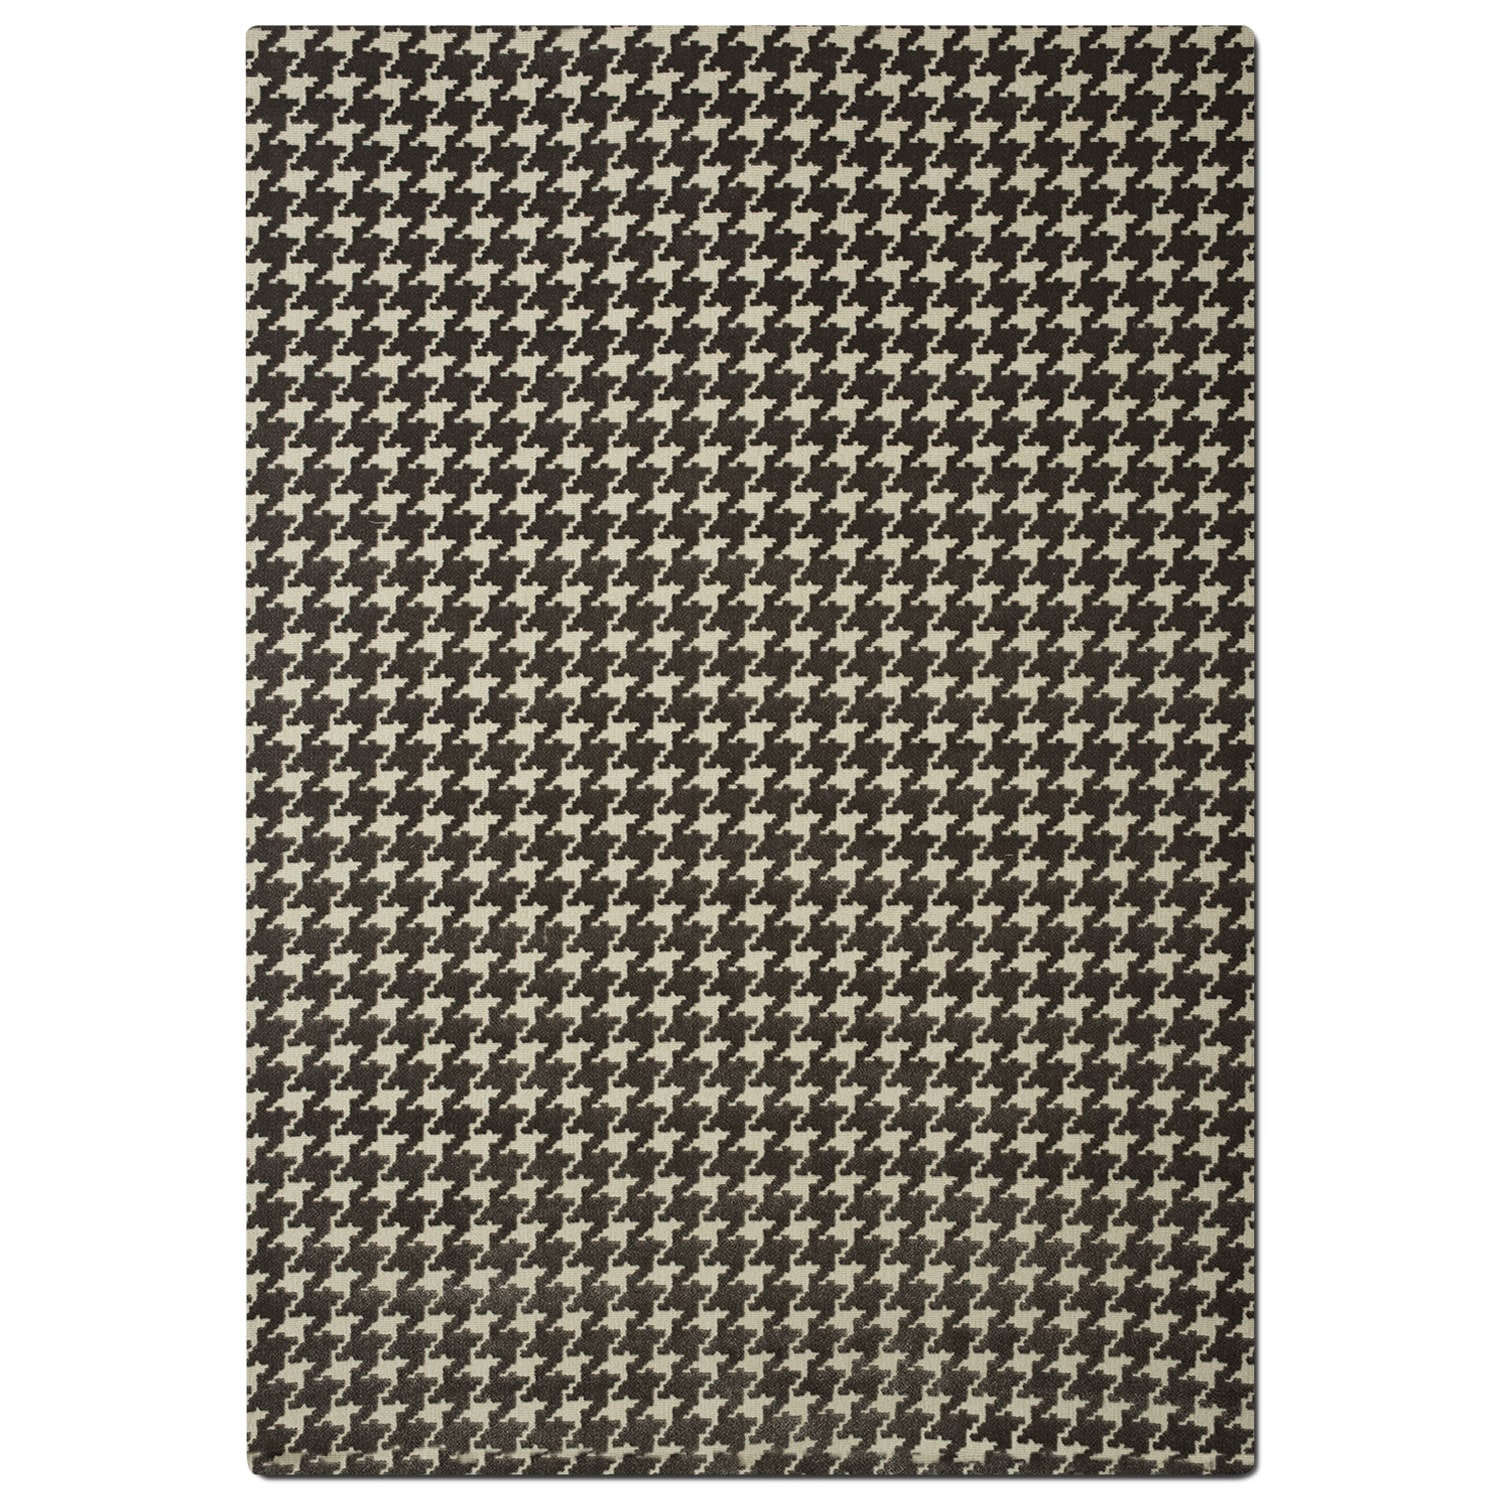 Rugs - Metro 8' x 10' Area Rug - Gray and Ivory